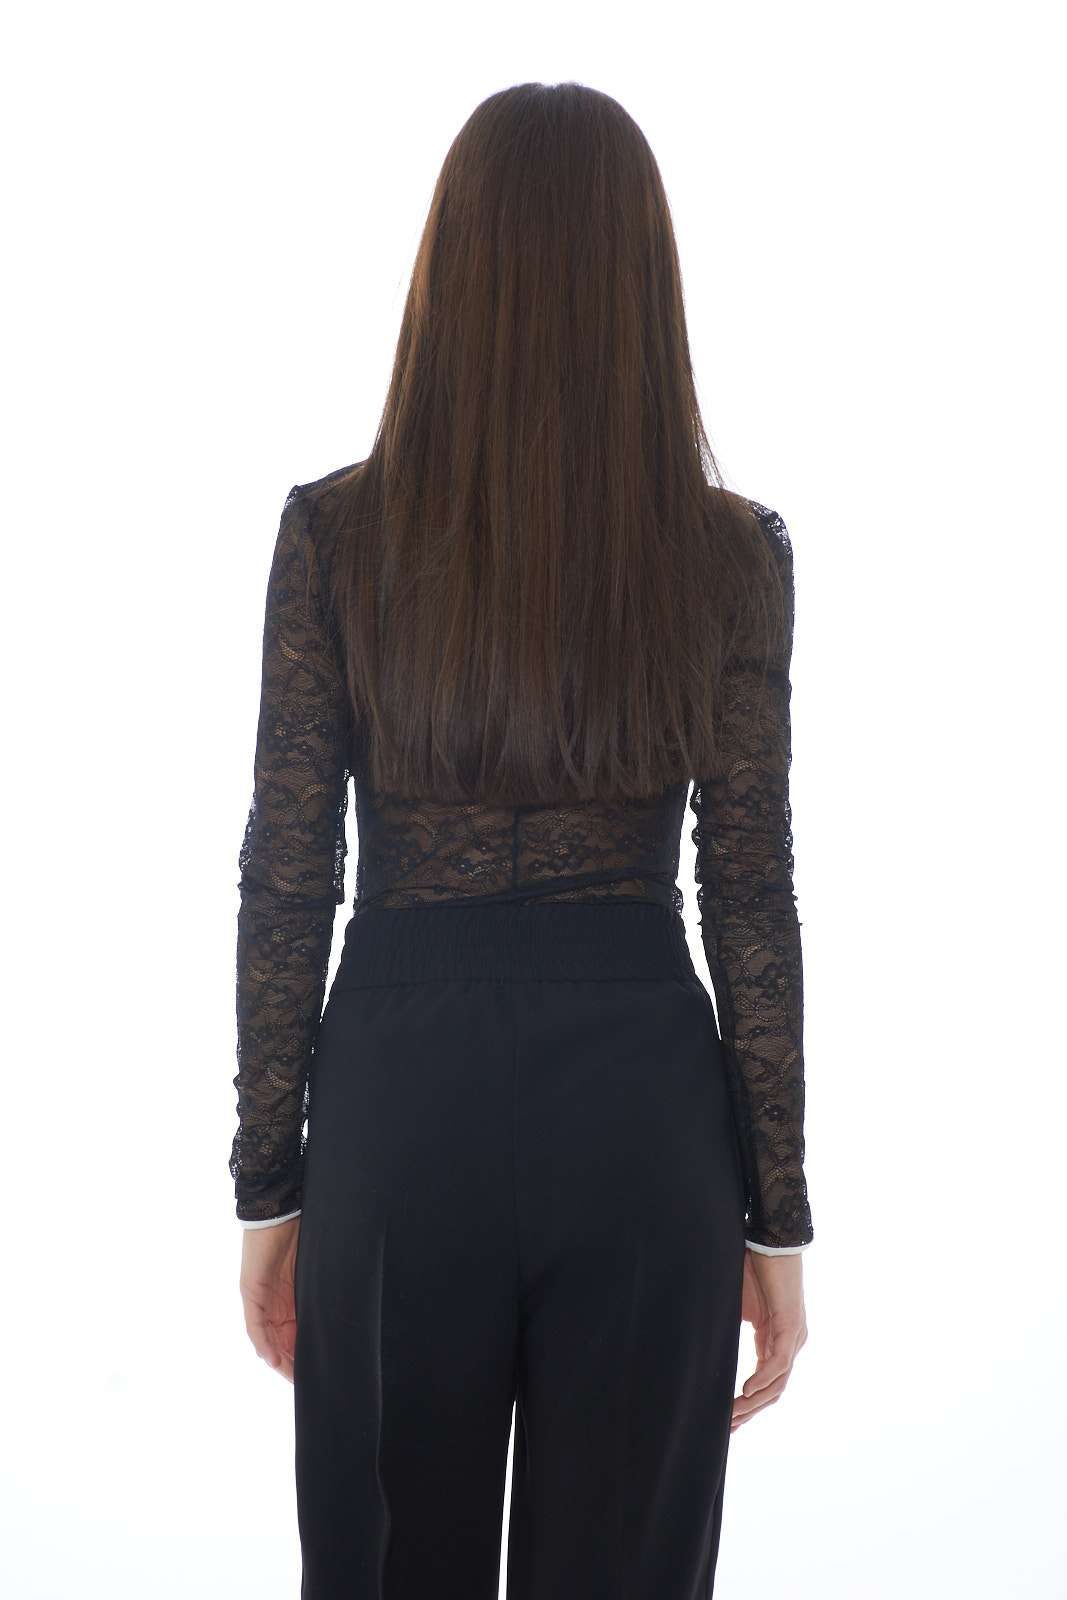 https://www.parmax.com/media/catalog/product/a/i/PE-outlet_parmax-top-donna-Pinko-1g13w1-C.jpg